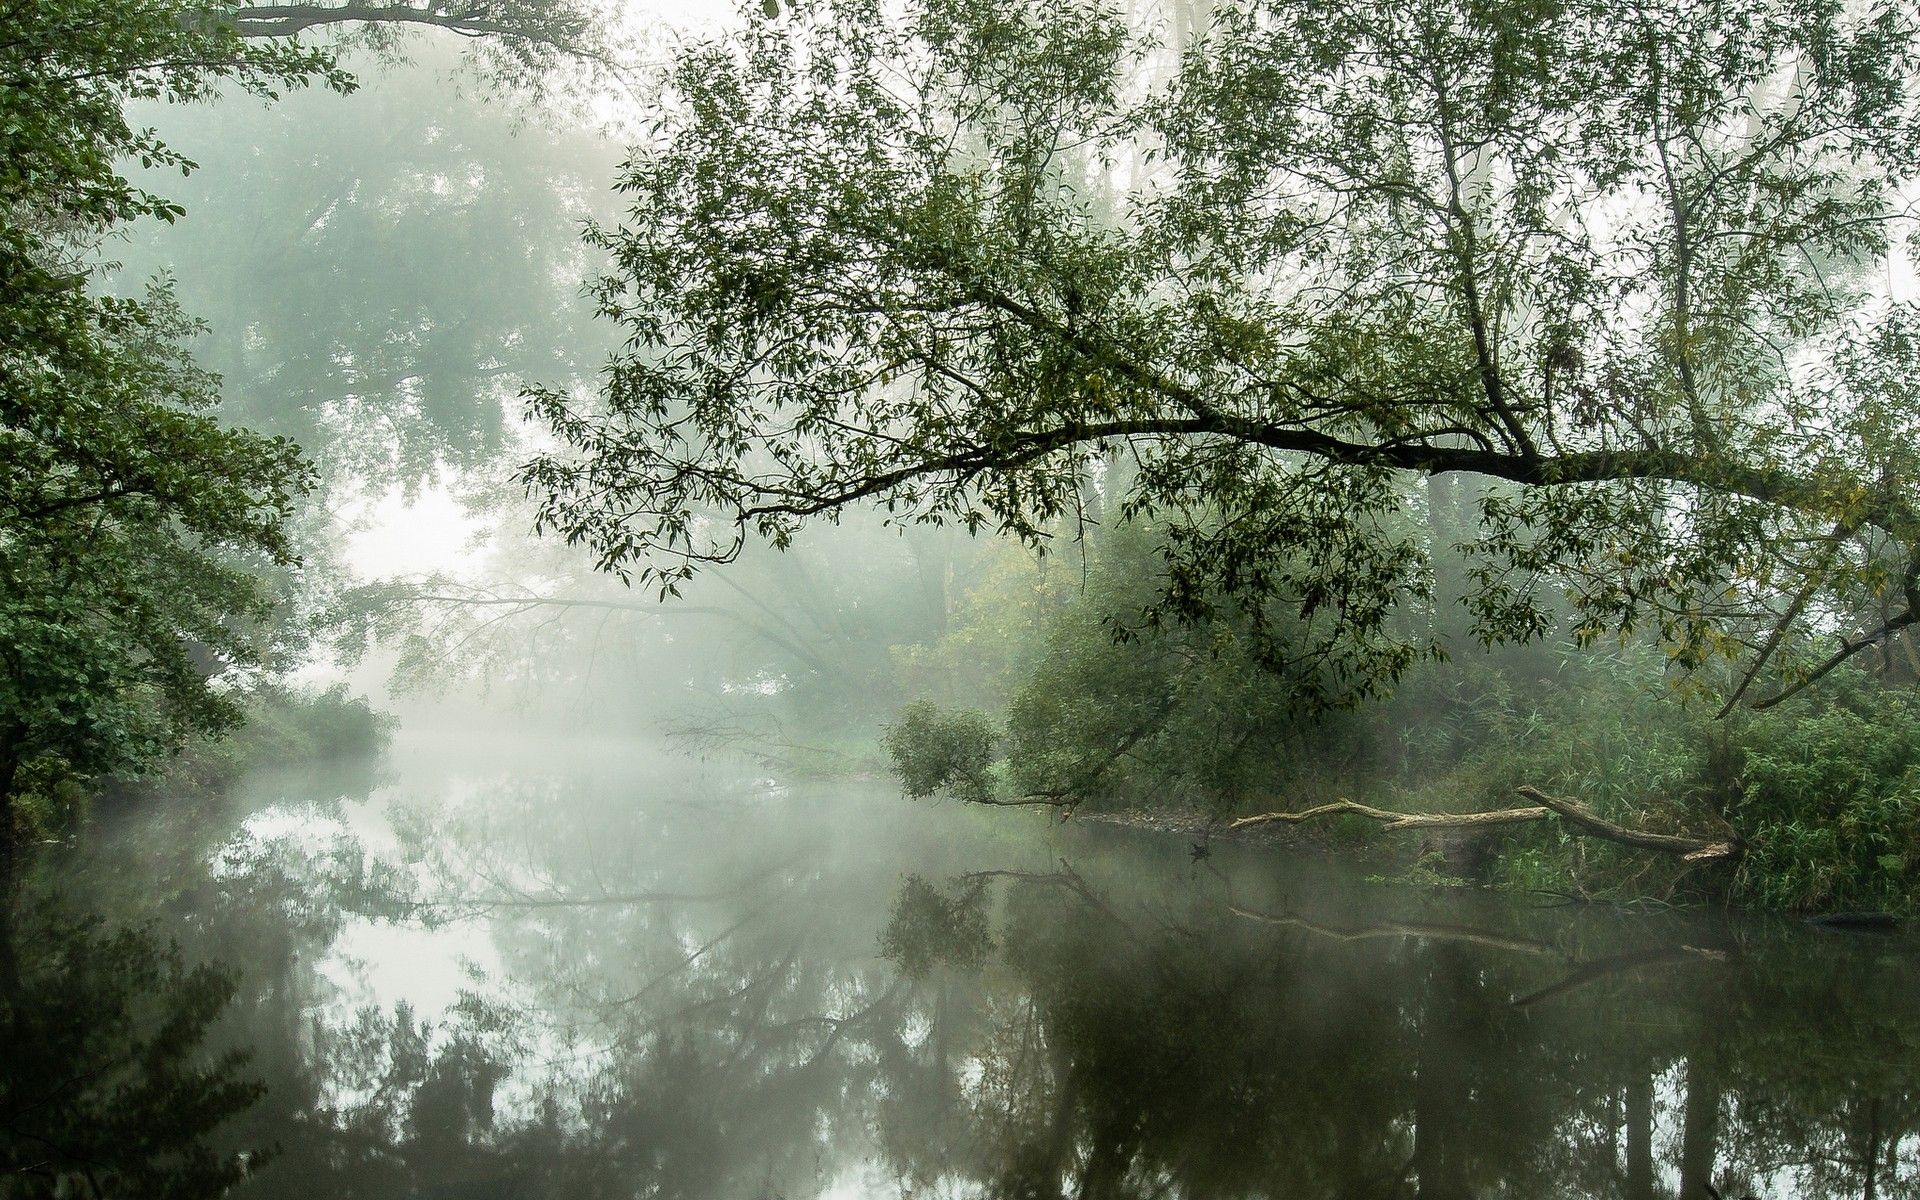 General 1920x1200 nature landscape river mist water reflection trees morning daylight shrubs atmosphere